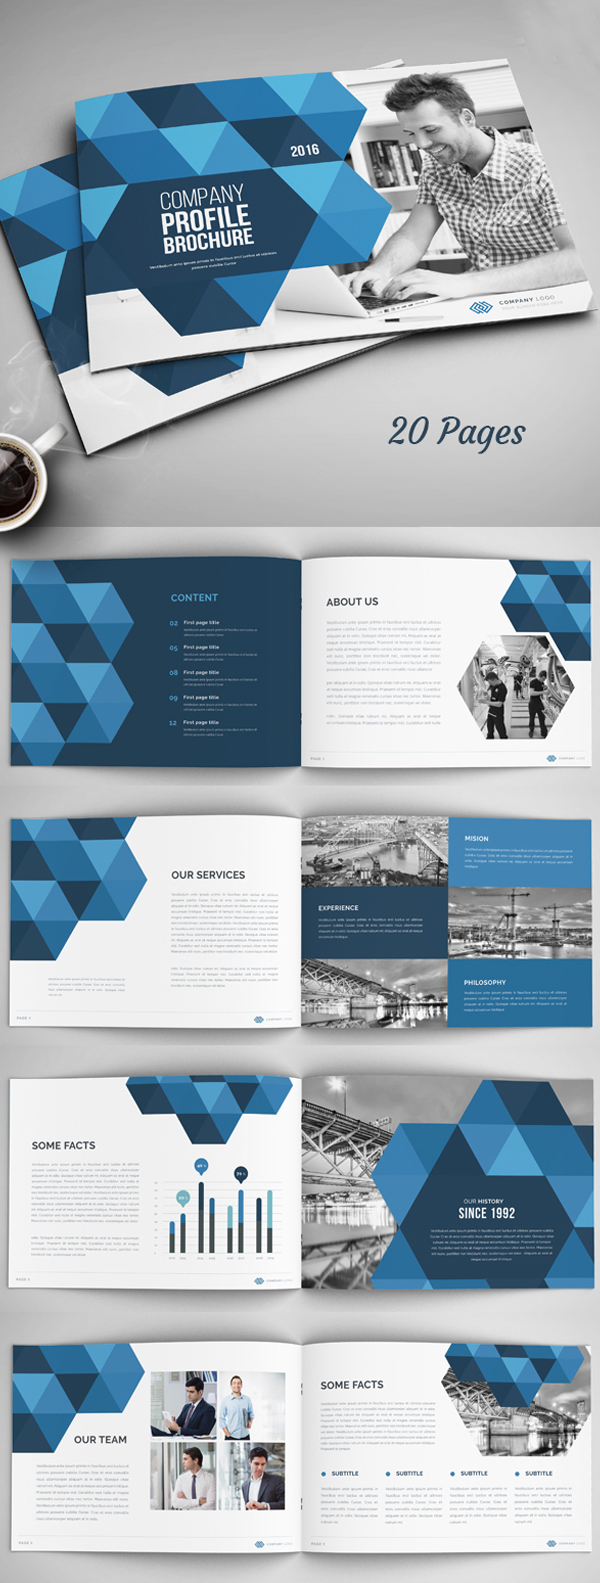 New Catalog Brochure Design Templates Design Graphic Design - Brochure template for pages